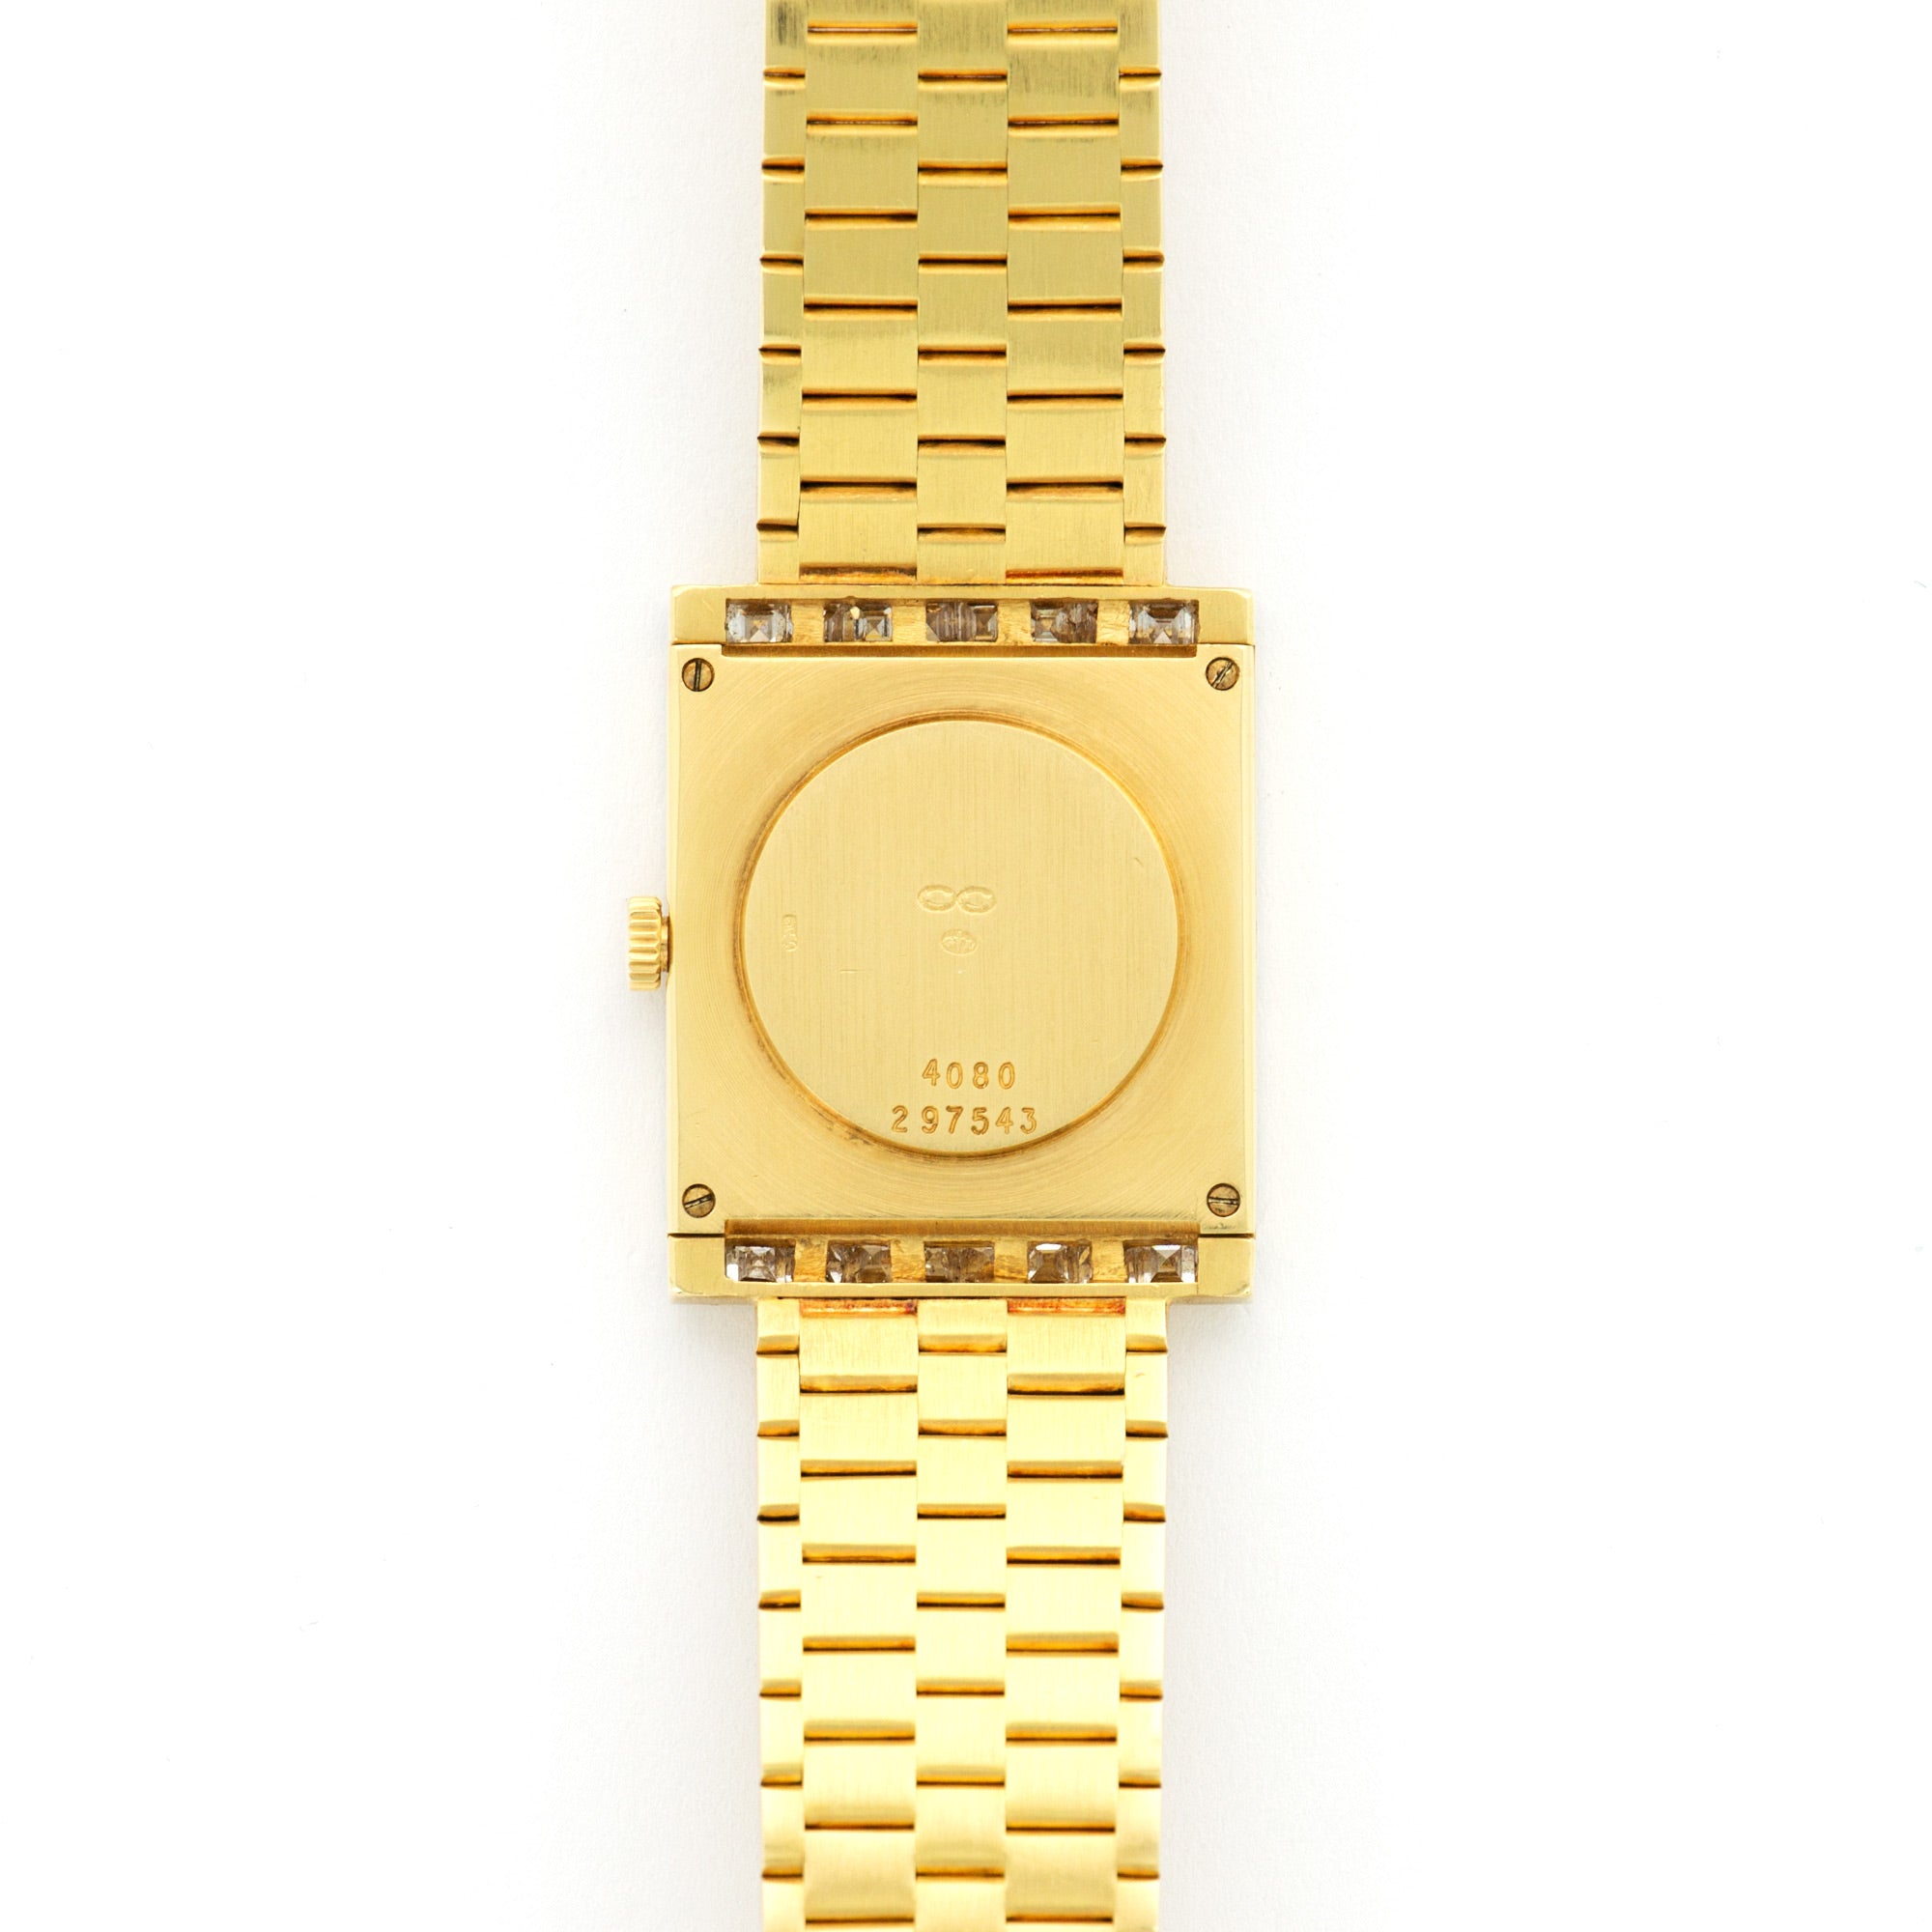 Piaget Vintage 4080 18k YG  Excellent Ladies 18k YG Gold 20.1 X 24.7mm Manual 1980s Yellow Gold Bracelet (156mm) N/A